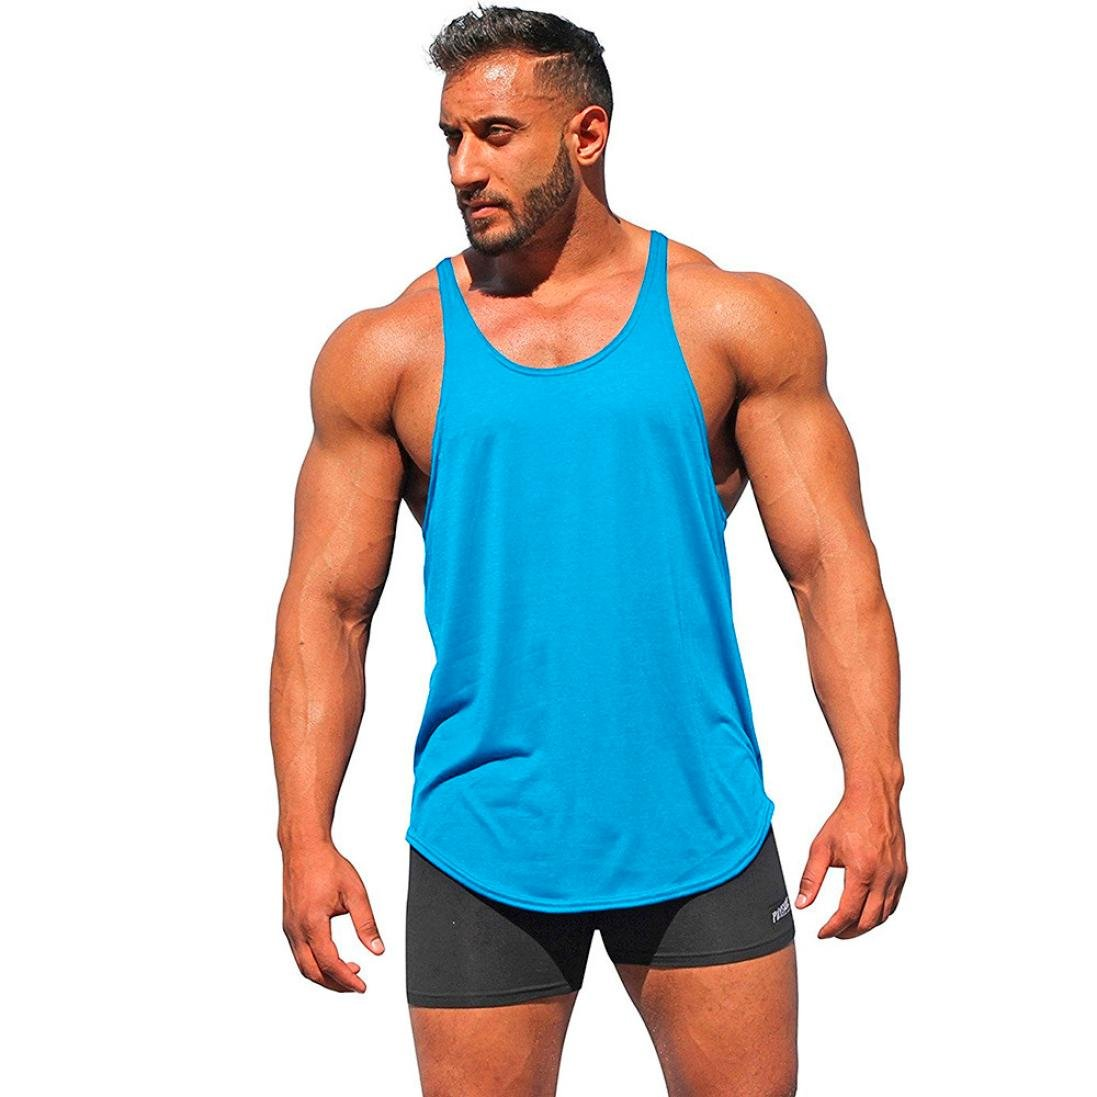 Allywit Sleeveless Shirts for Men Muscle Workout Tank Tops Bodybuilding Running